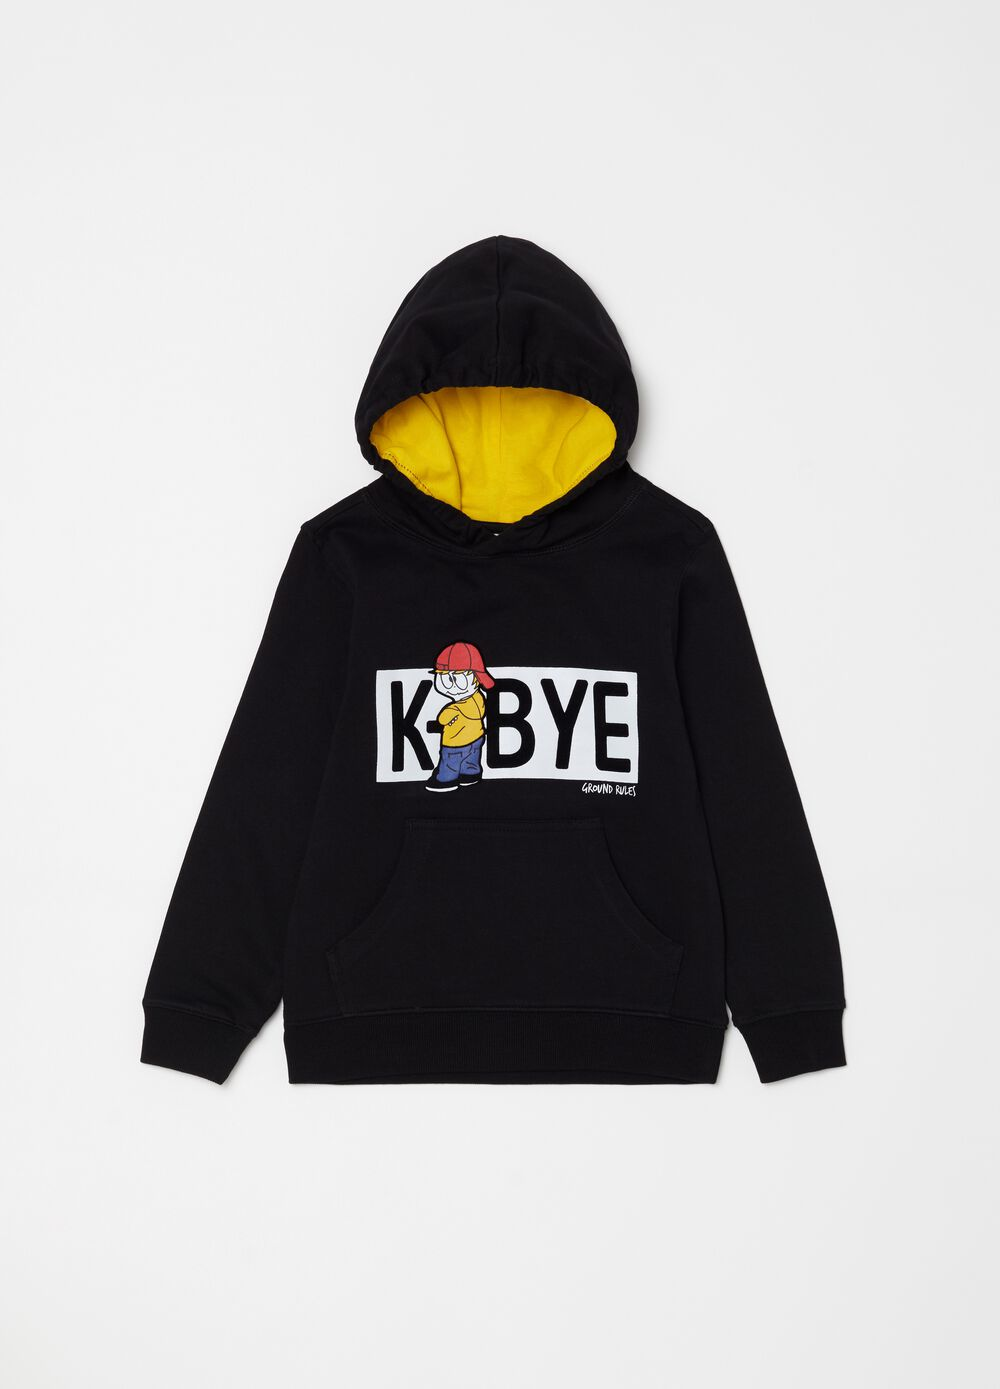 Sweatshirt in cotton with pouch pocket and print